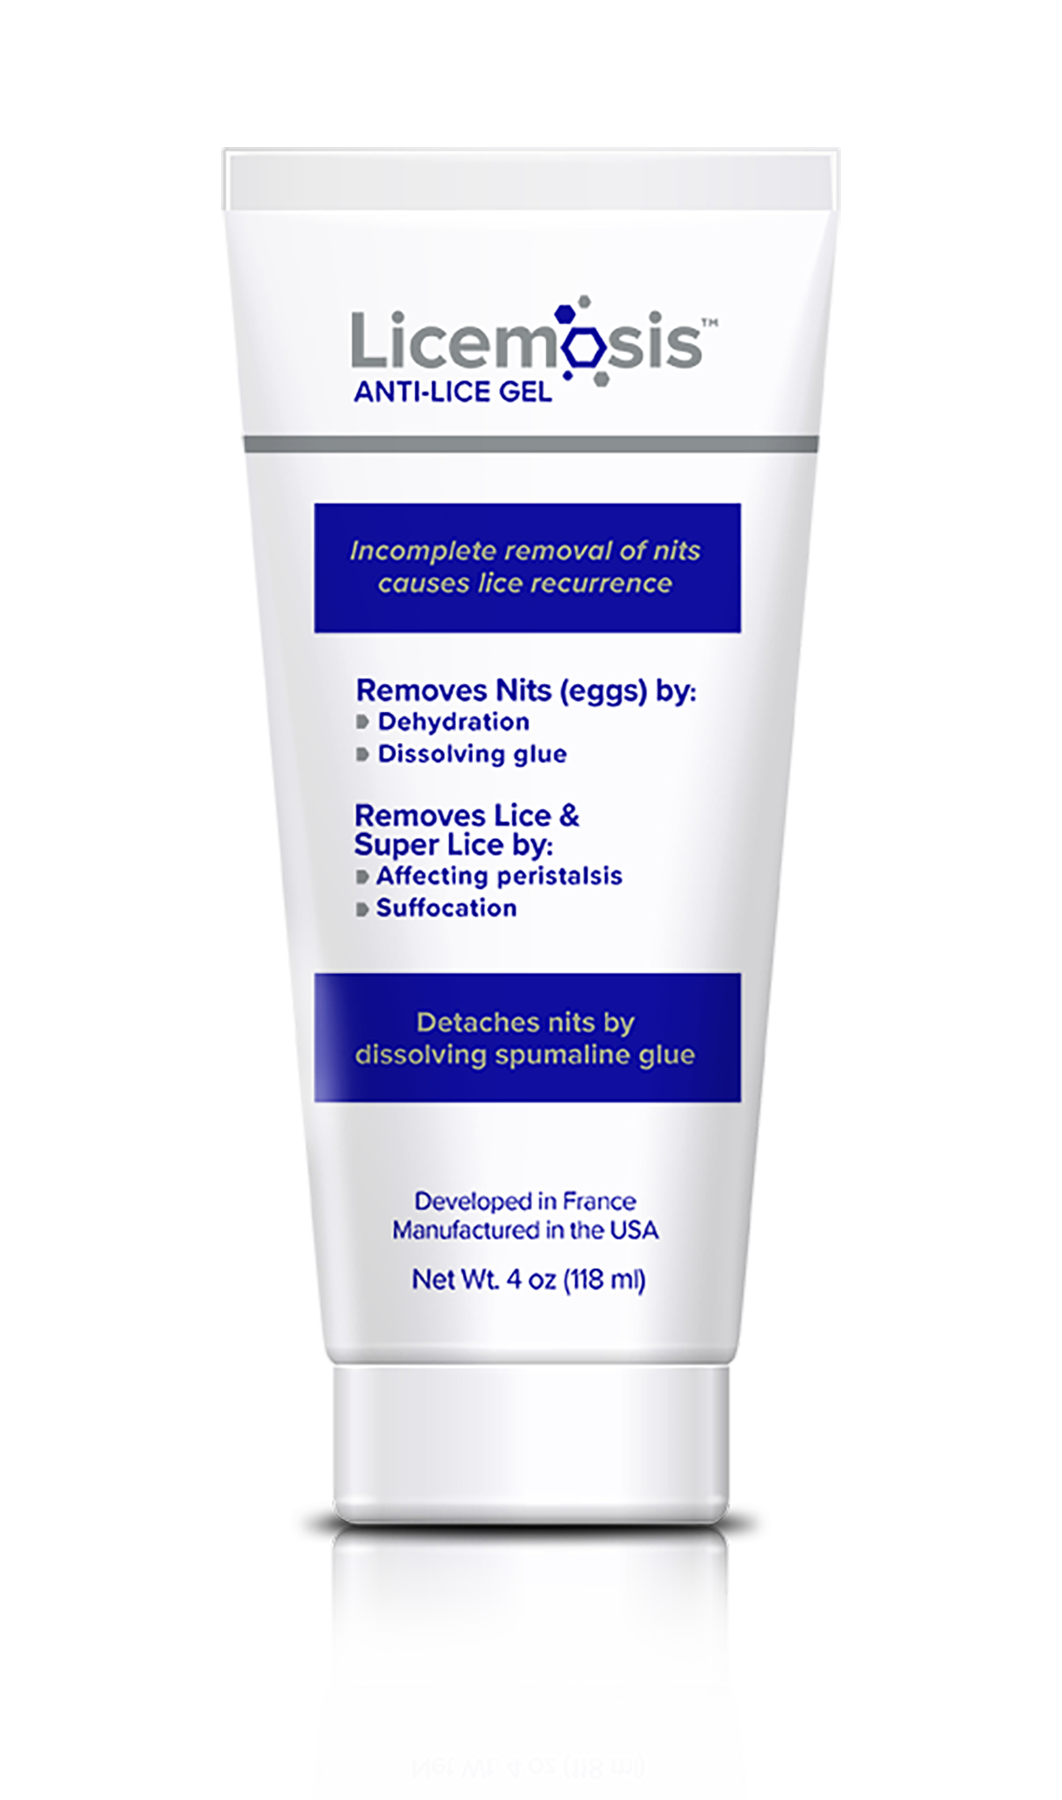 Licemosis Anti Lice Gel Eliminates Nits Lice And Fear Of Recurrence Guaranteed Gel Lice Removal How To Remove